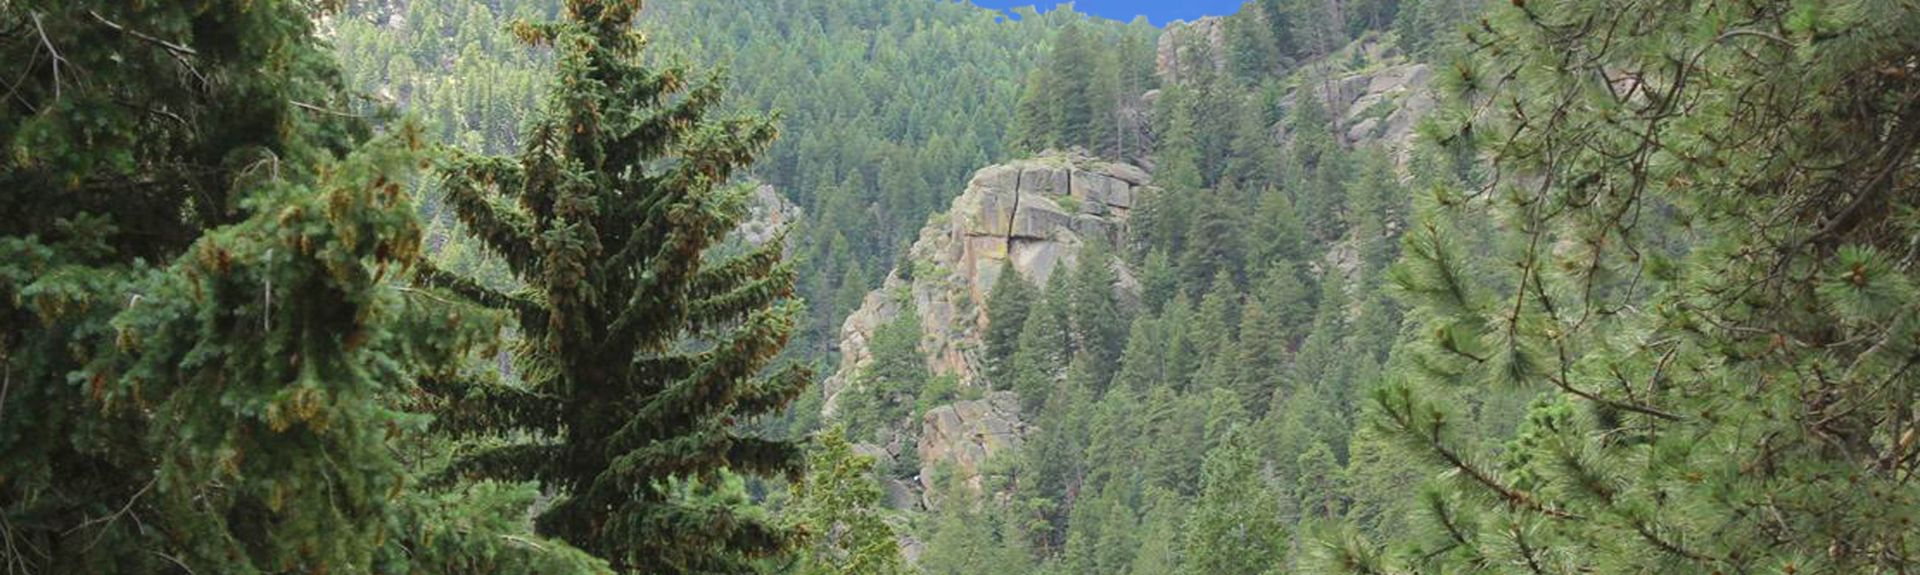 Vrbo 174 Manitou Springs Co Vacation Rentals Reviews